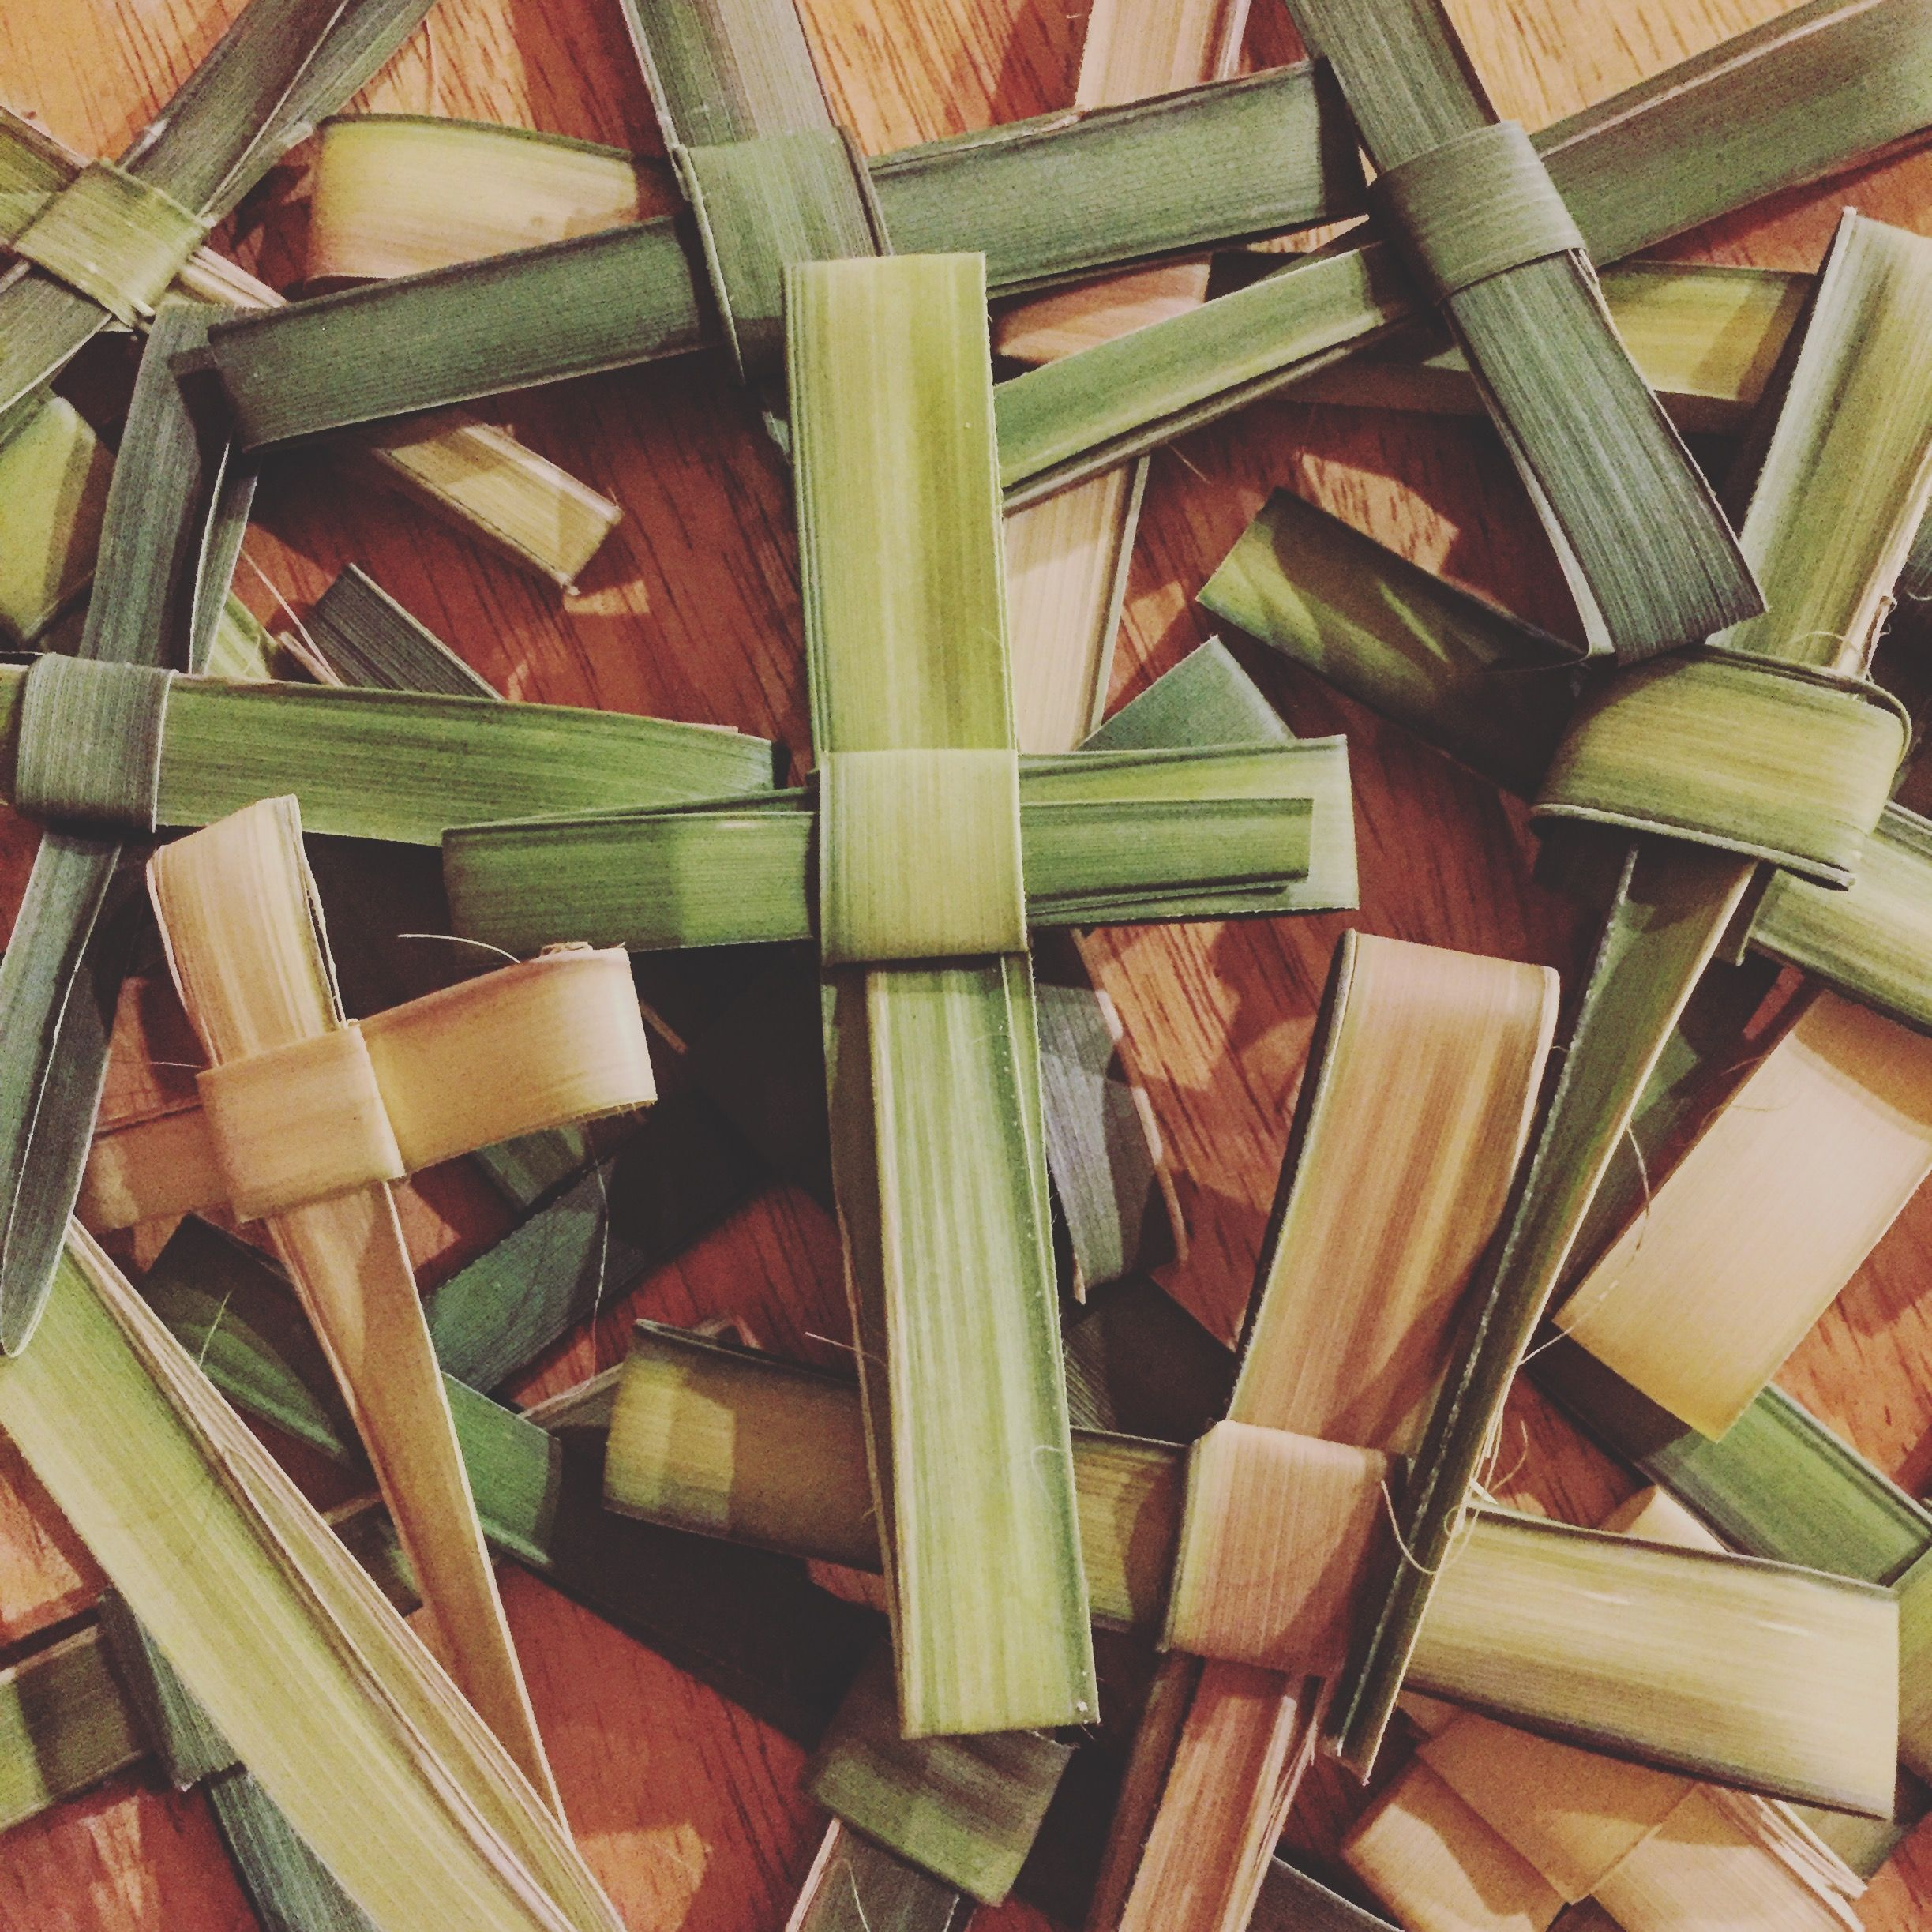 Click here to learn how to makea simple palm cross have